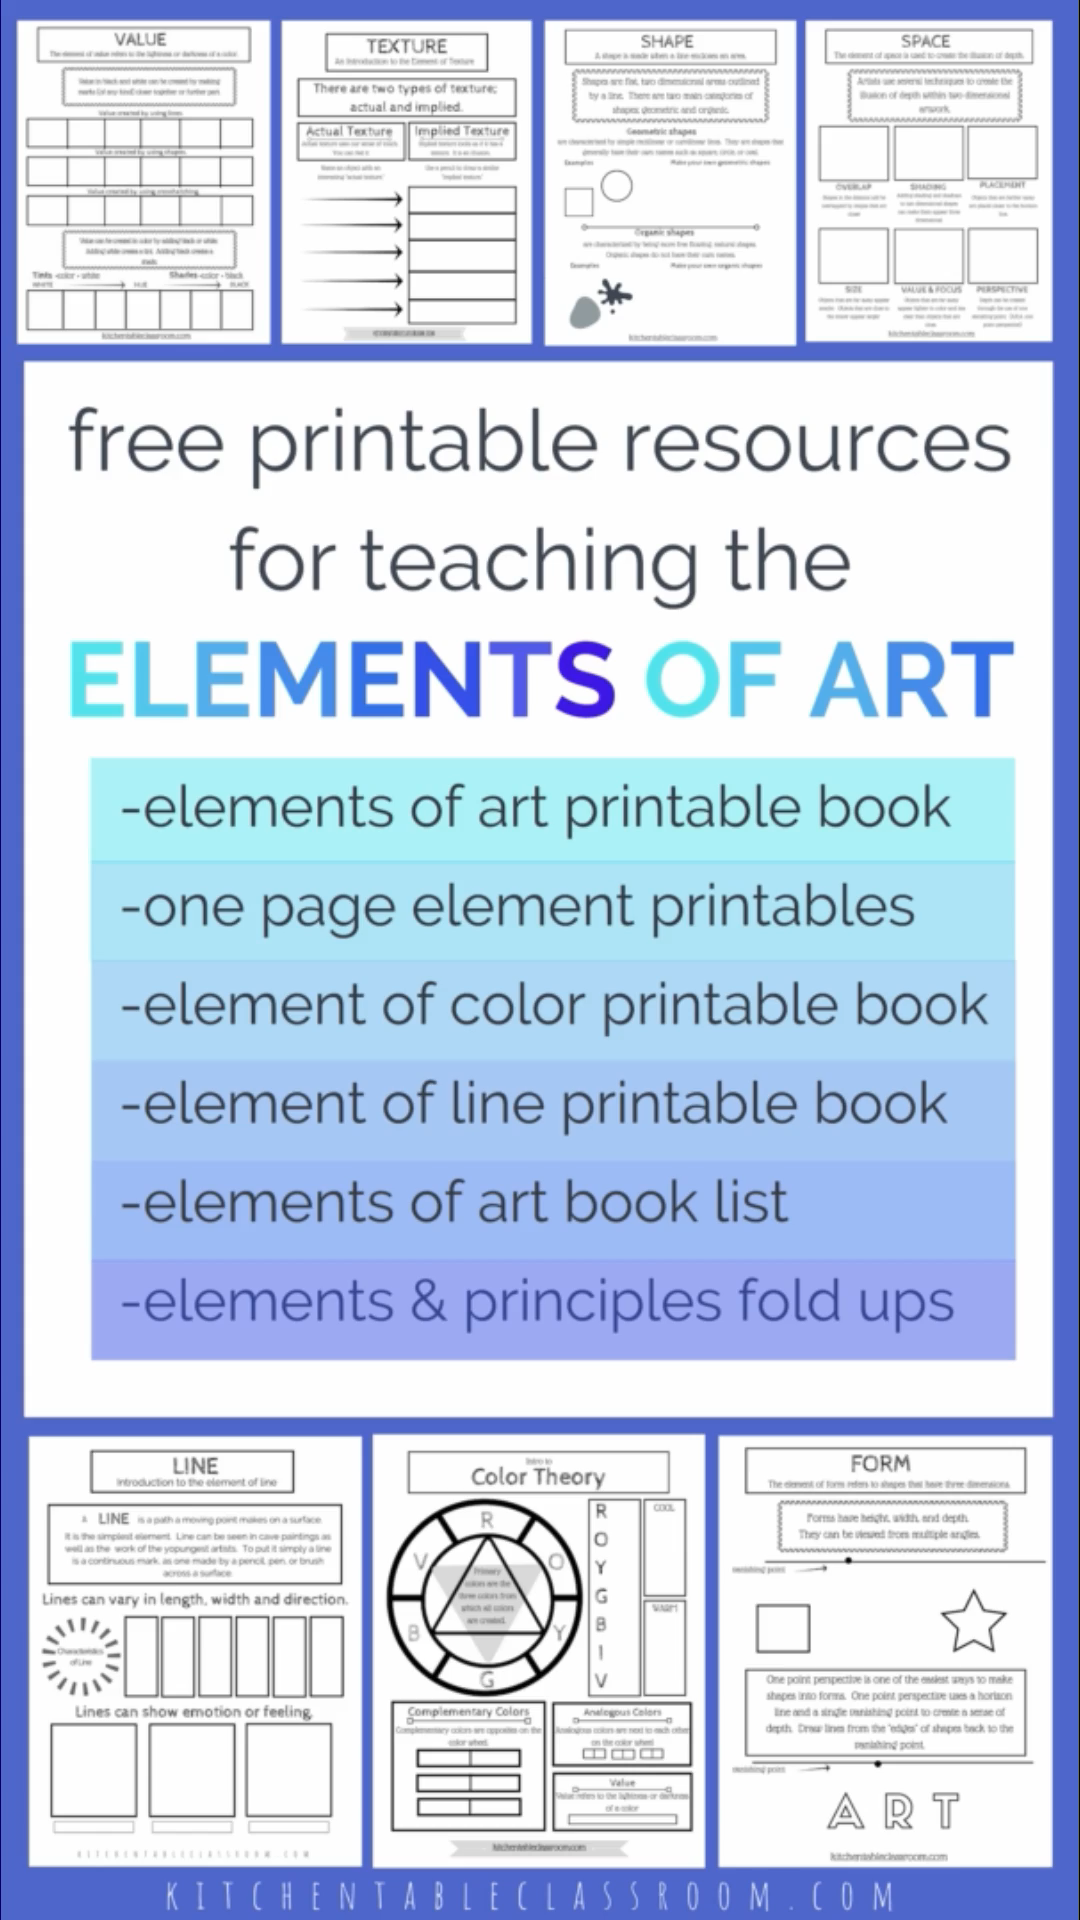 Complete Collection Of Elements Of Art Resources The Kitchen Table Classroom Video Video Elements Of Art Art Lesson Plans Art Worksheets [ 1920 x 1080 Pixel ]